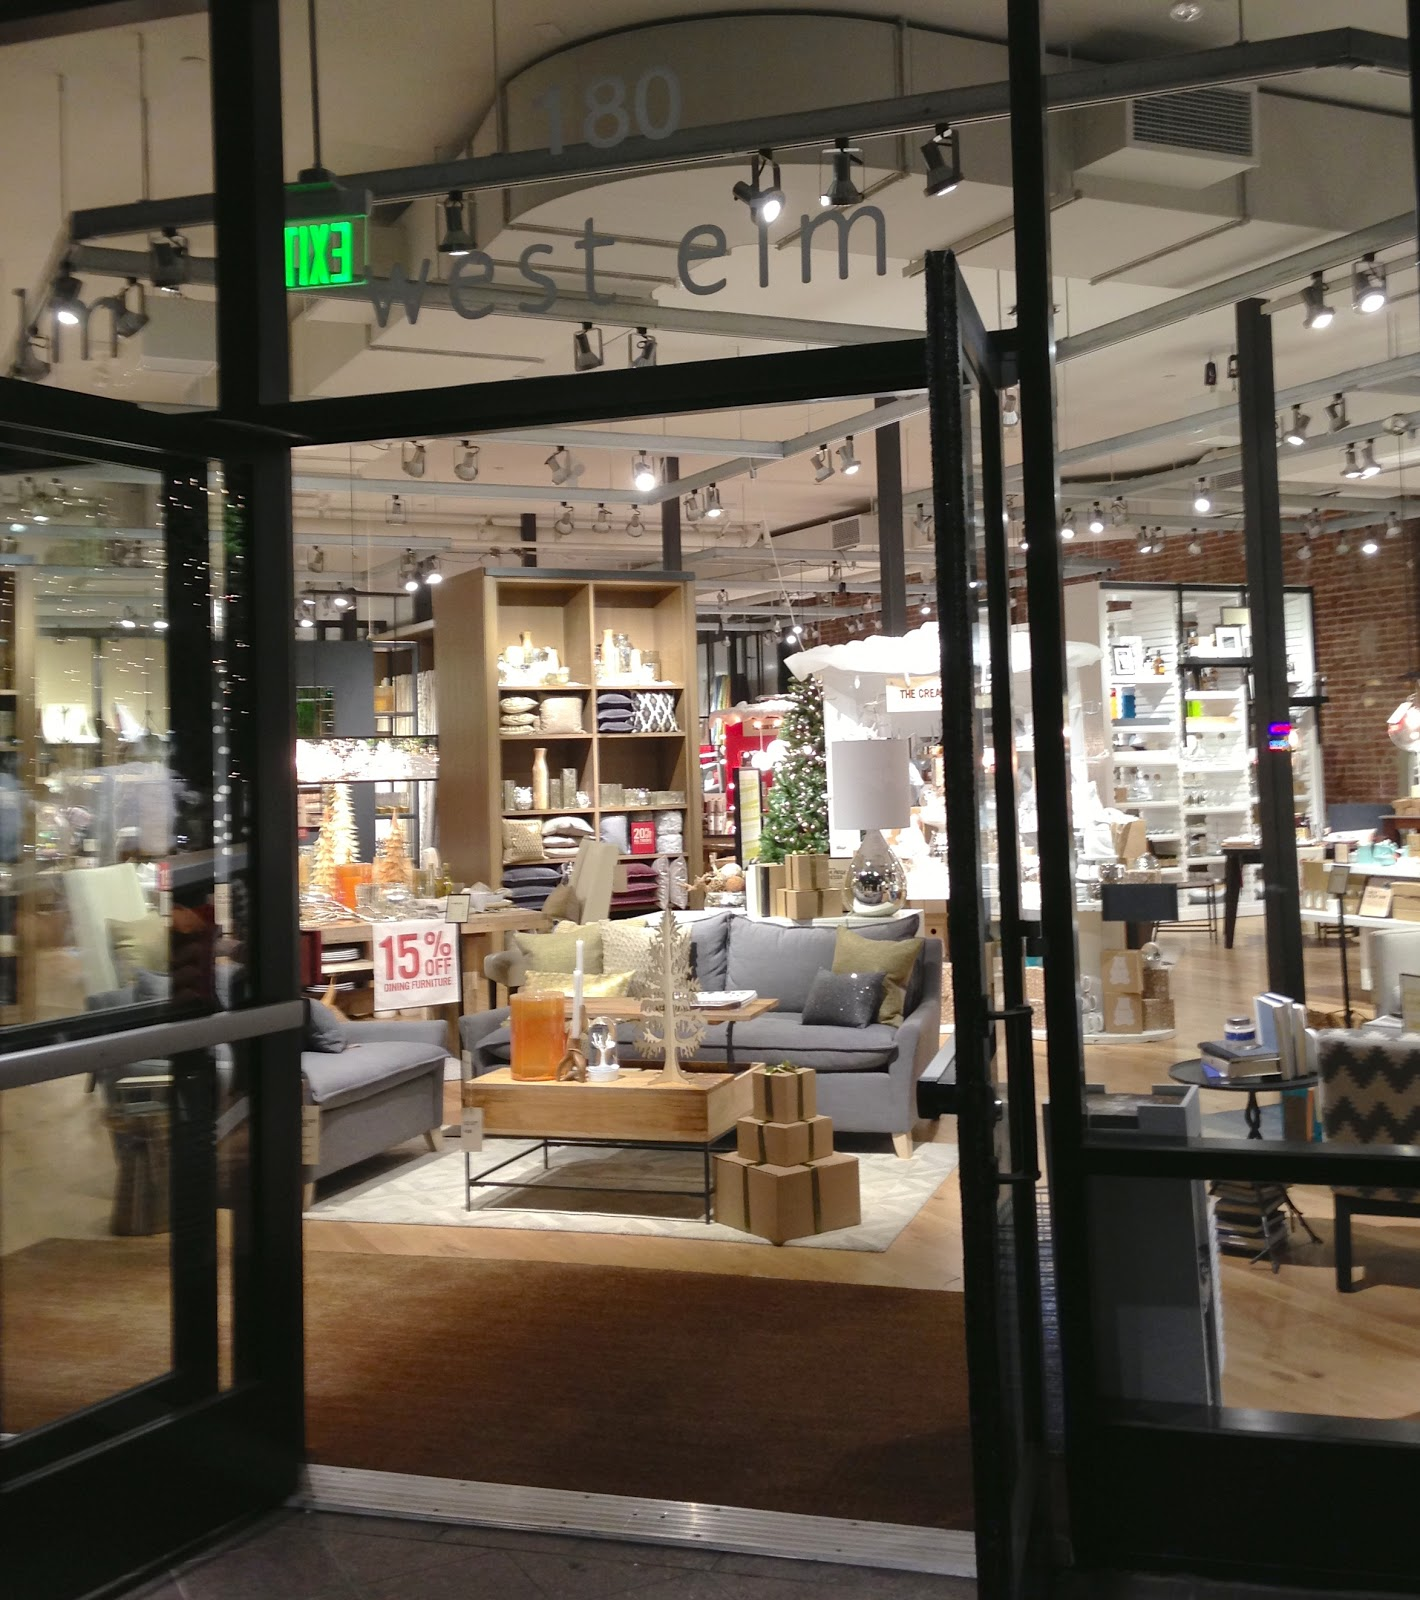 Funiture Stores: University Avenue, Palo Alto: Two New Furniture Stores